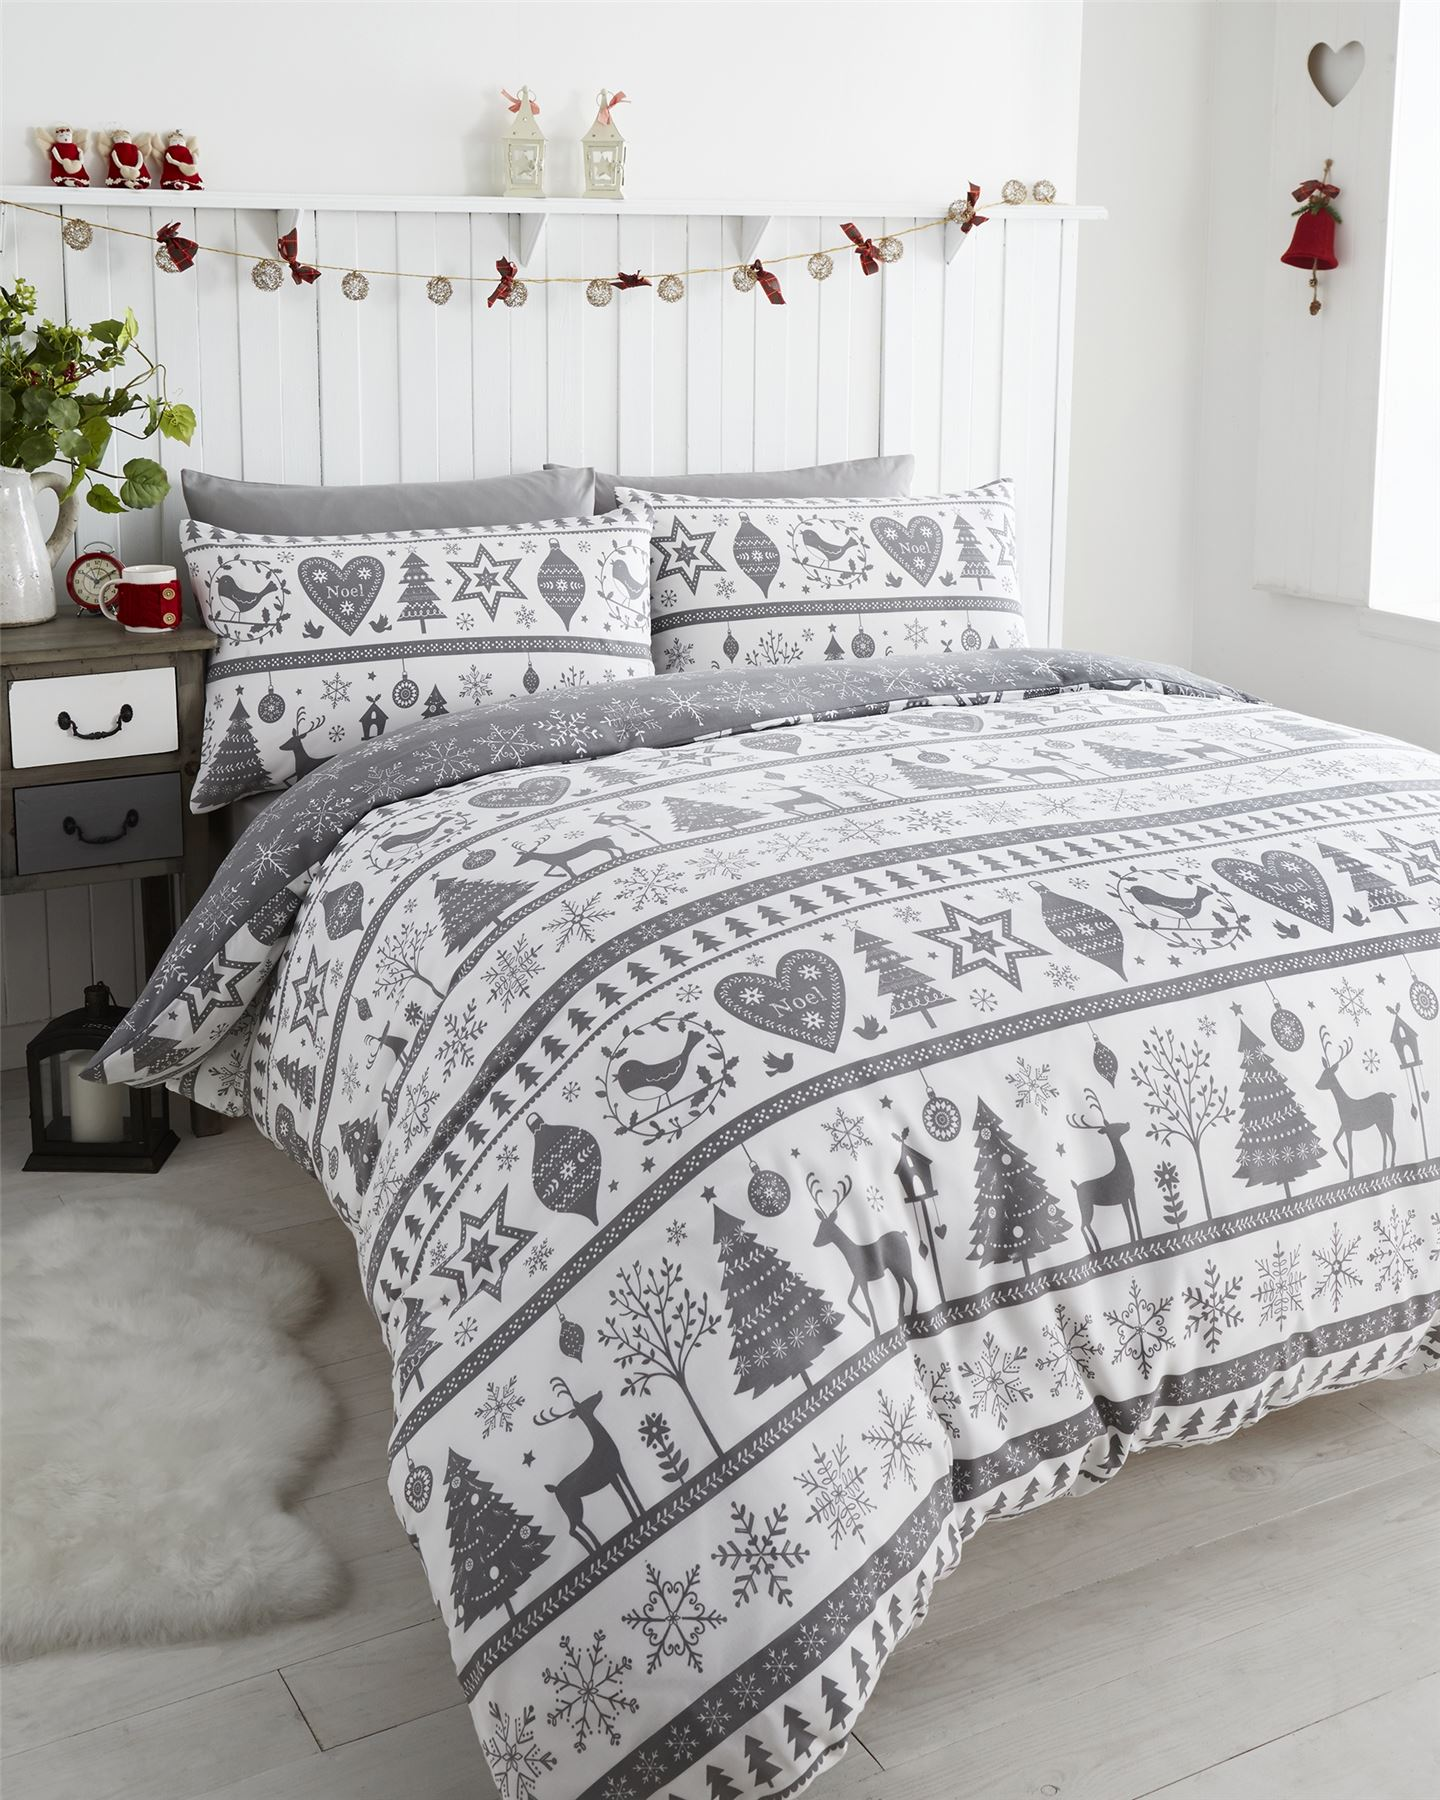 Duvet Cover Amp Pillowcase Bedding Bed Sets Bed Linen All